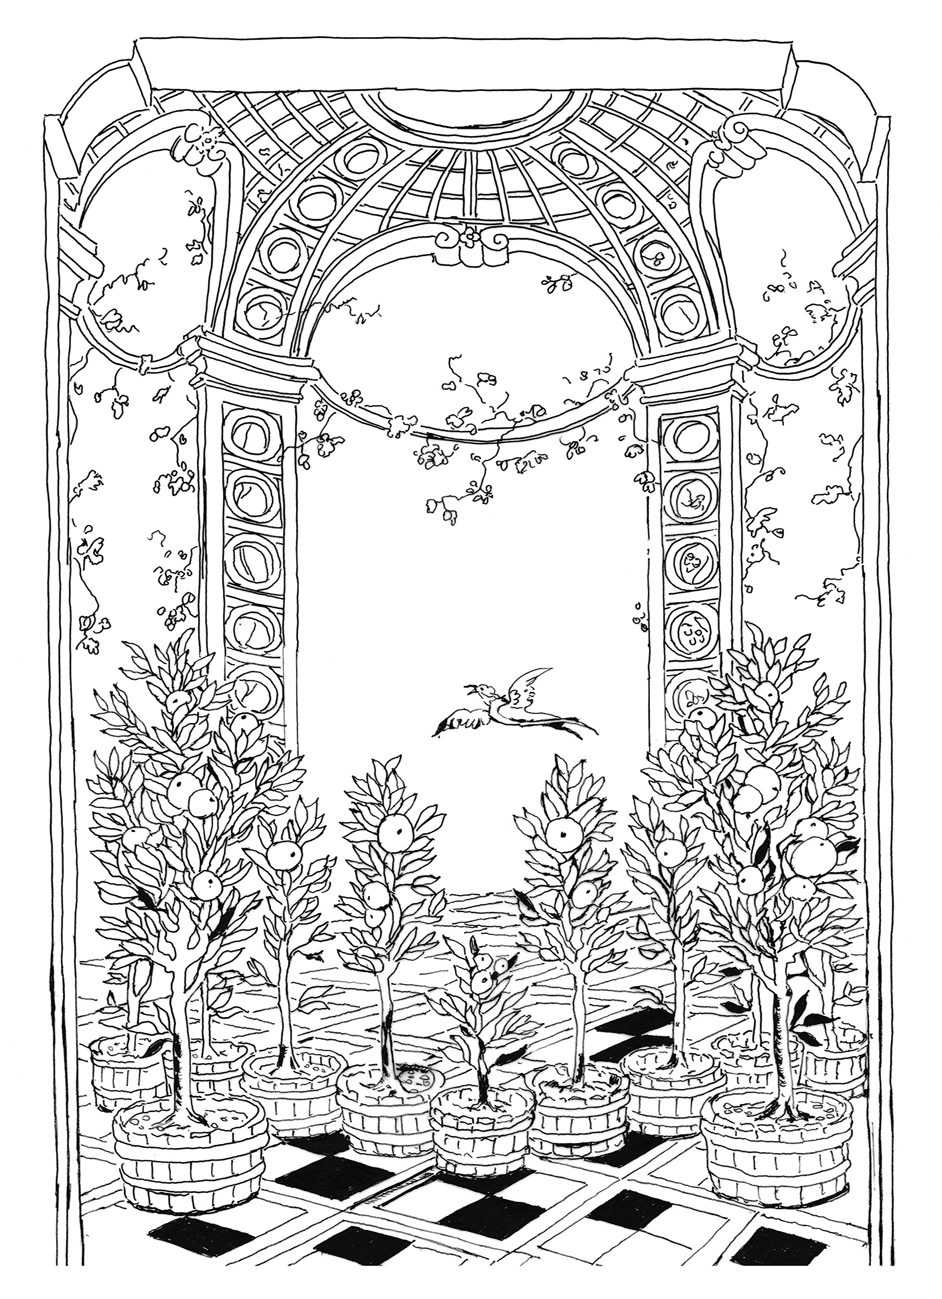 Lost Garden Pippa Rossi Orangerie About An Interview With Color Book